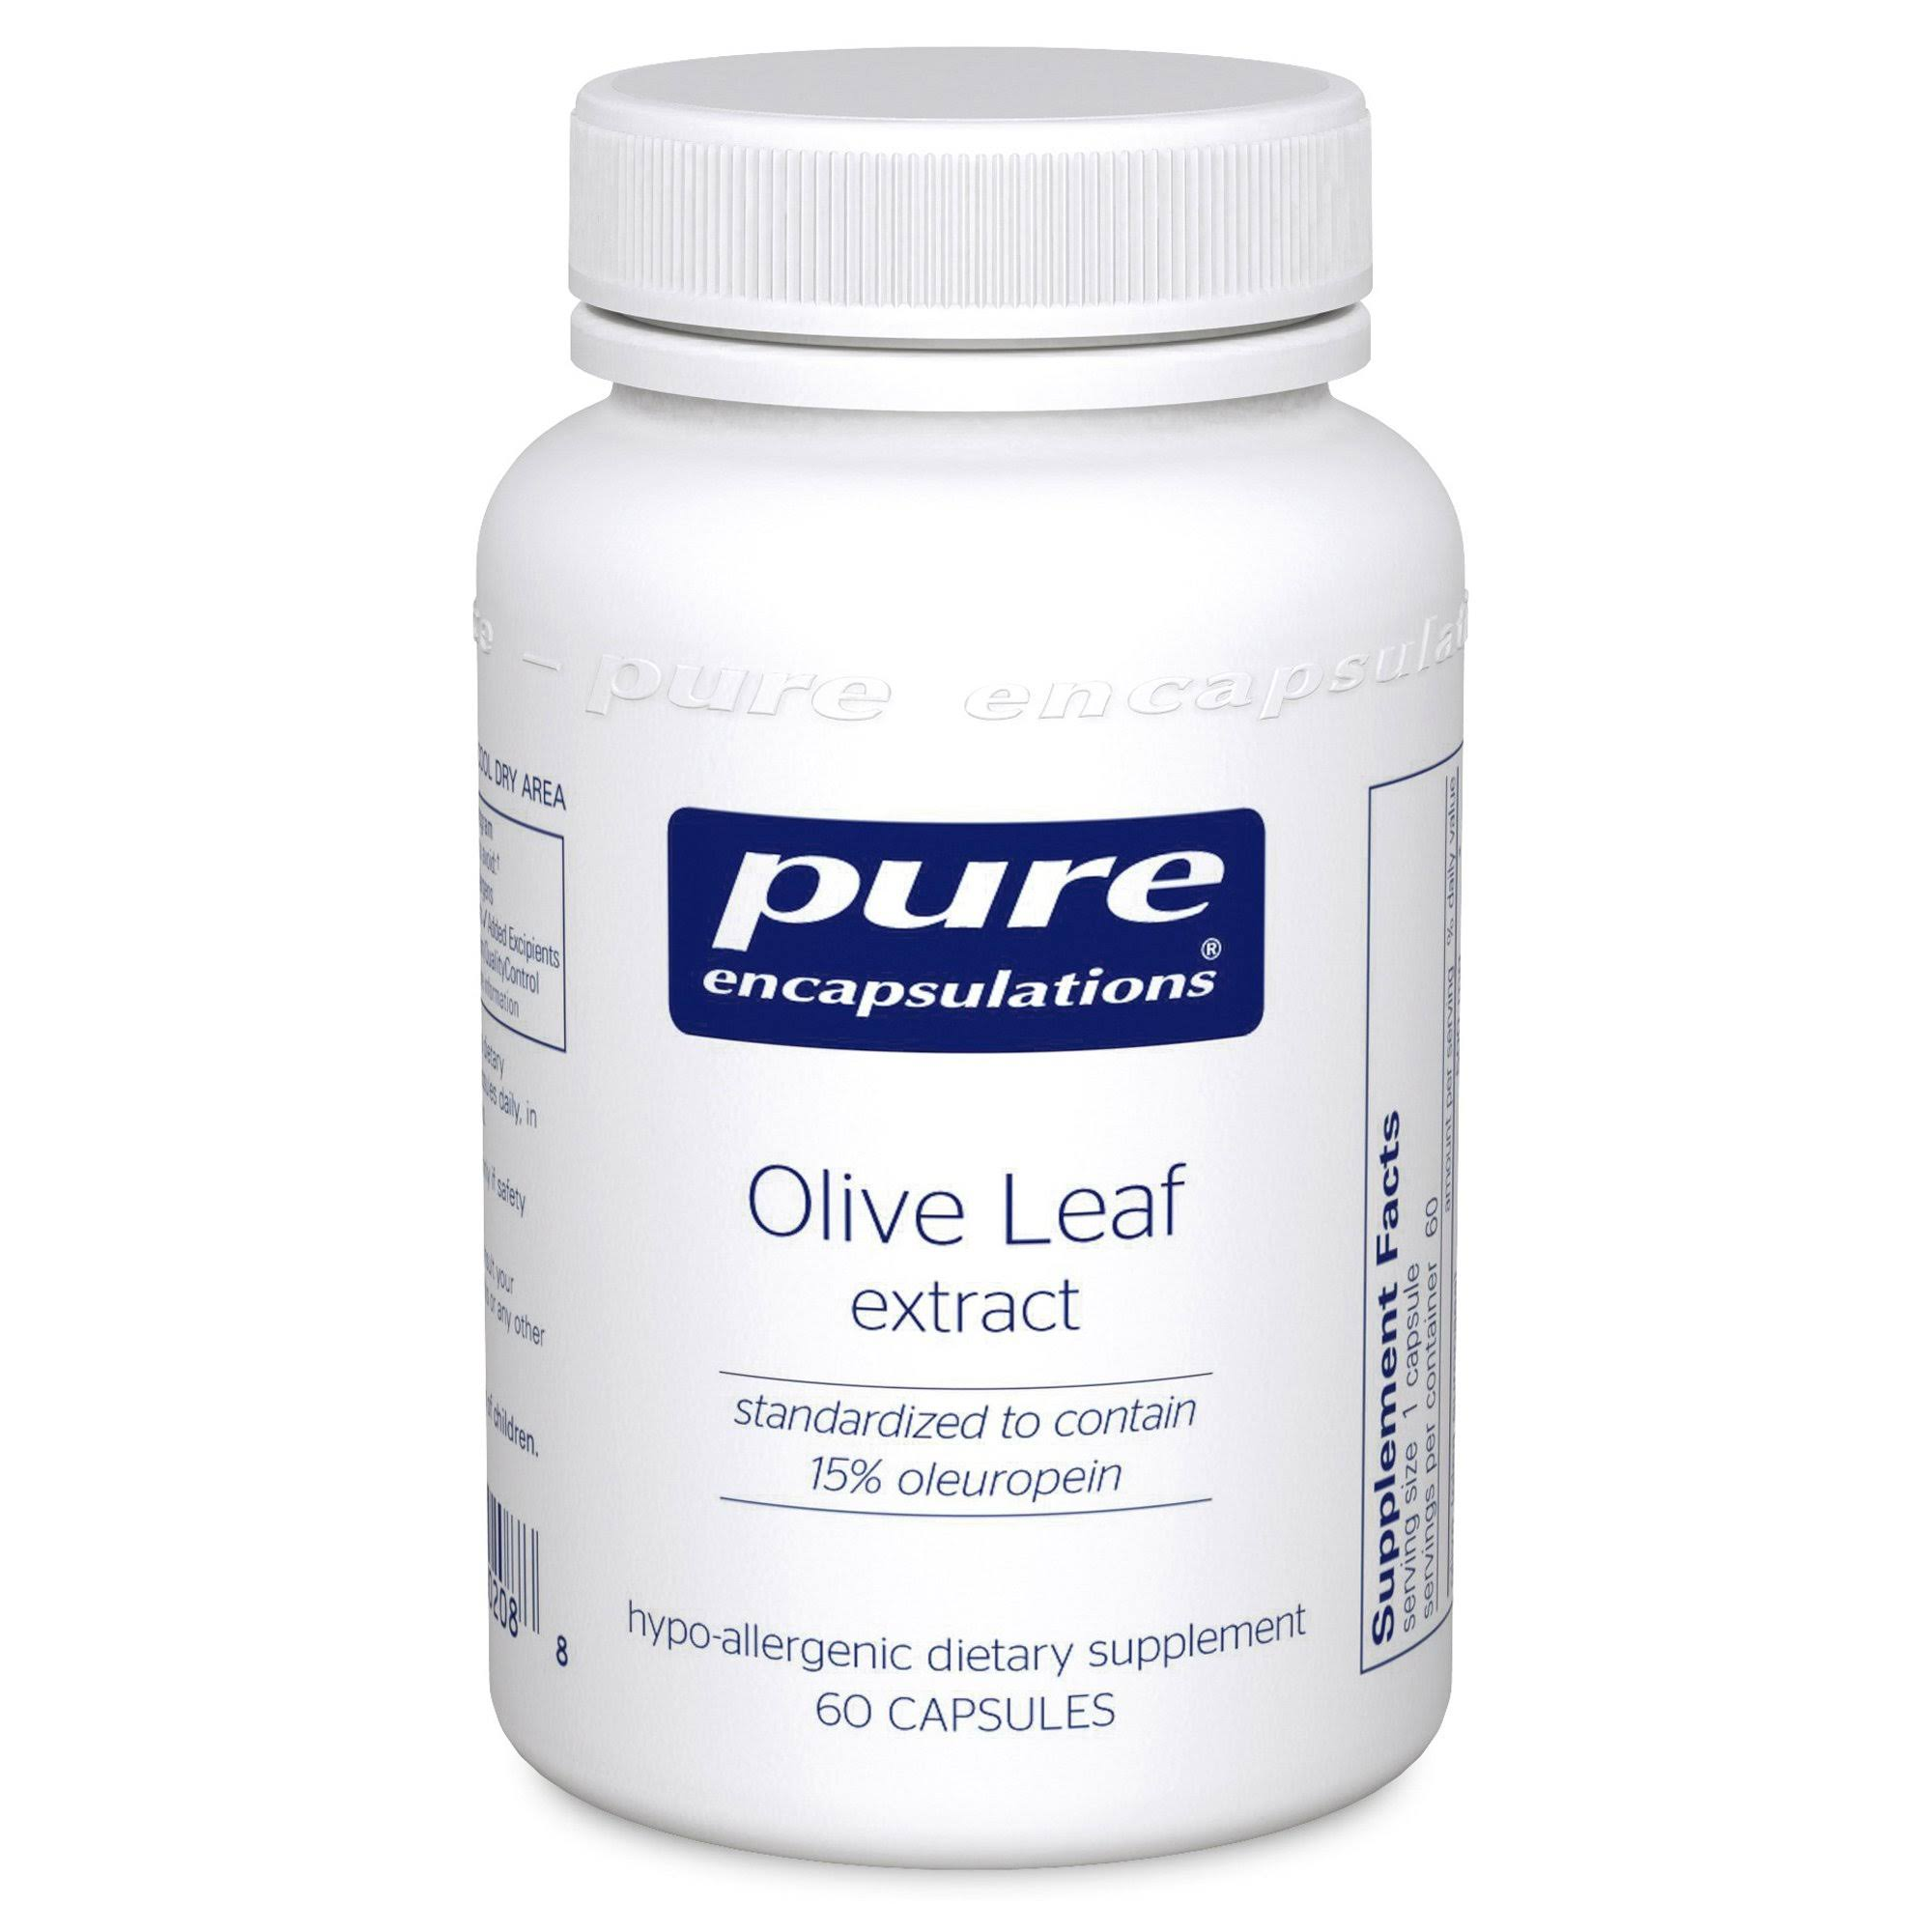 Pure Encapsulations Olive Leaf Extract Dietary Supplement - 60ct